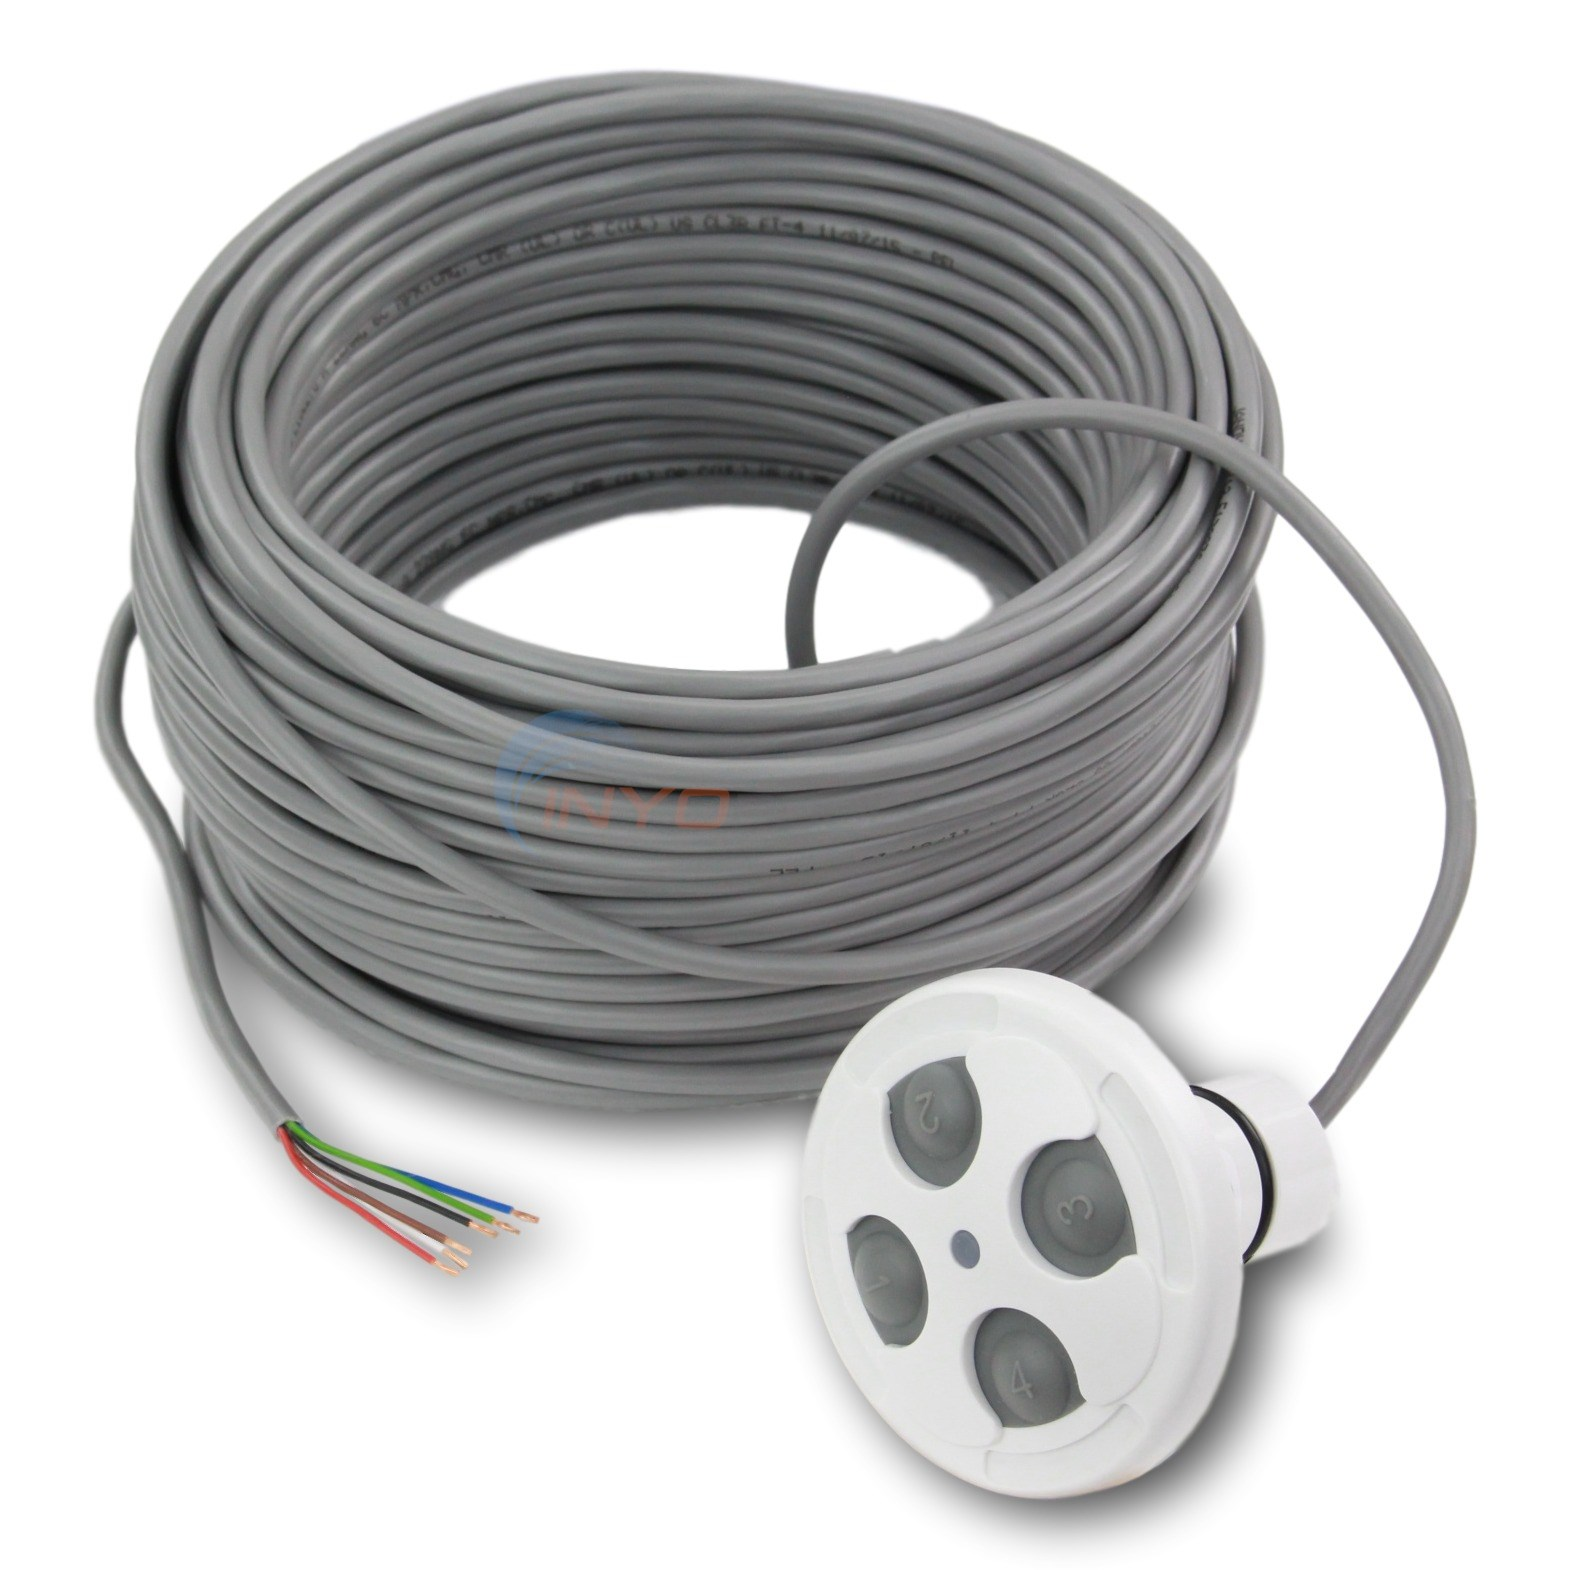 jandy 7441 04?format=jpg&scale=both&anchor=middlecenter&autorotate=true&mode=pad&width=650&height=650 jandy 4 function spa side remote white 100 ft 7441 inyopools com Wiring Harness Connector Plugs at edmiracle.co